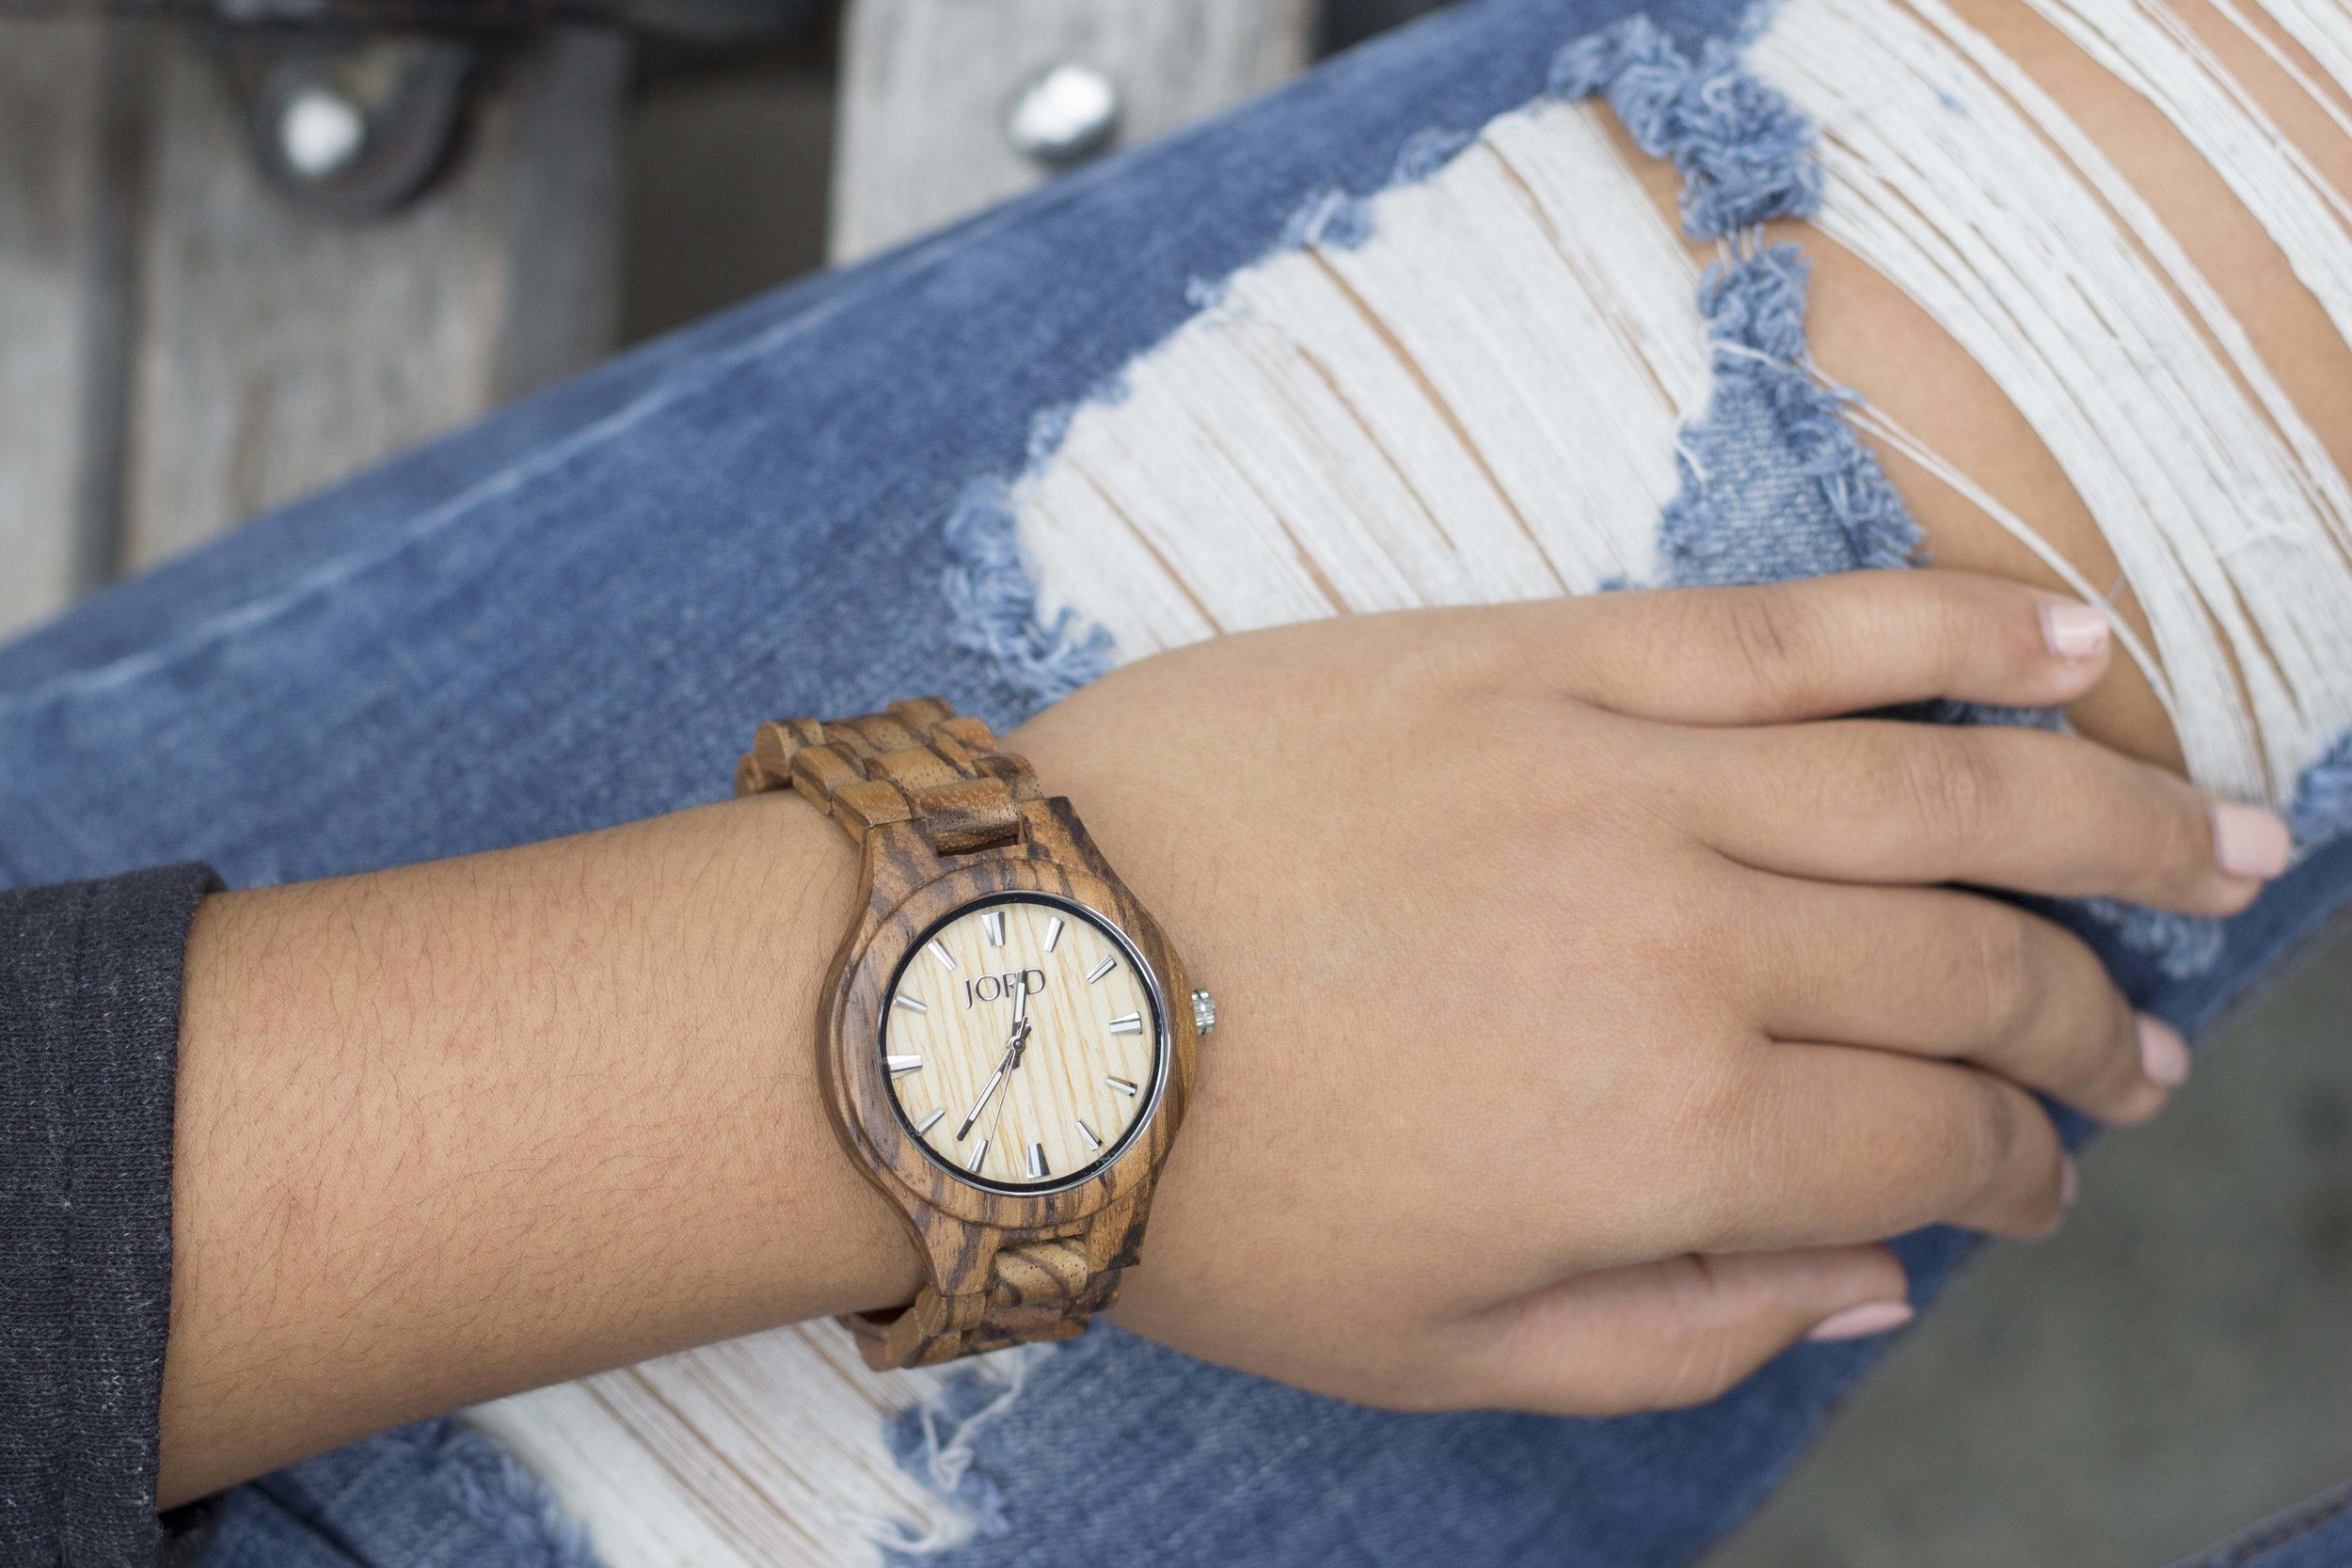 Time for Fall- Jord Watch10.jpg